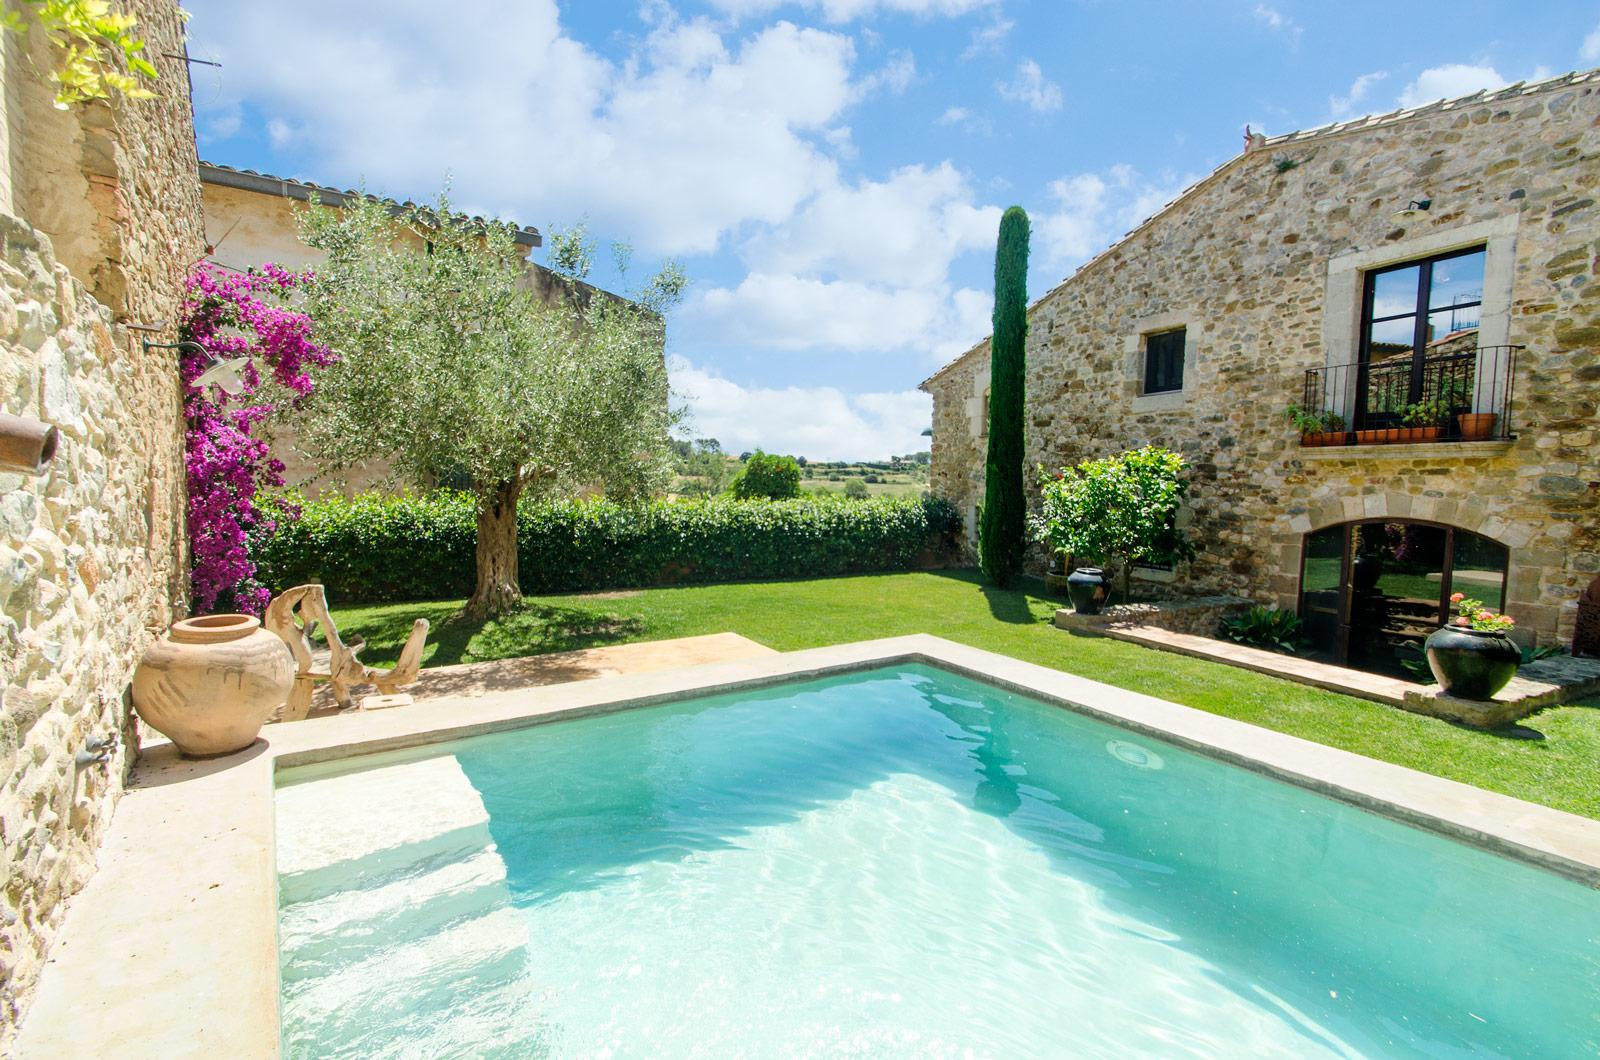 1. Villa for sale in Girona - Traditional Masia, Catalonia country house, for sale in Girona